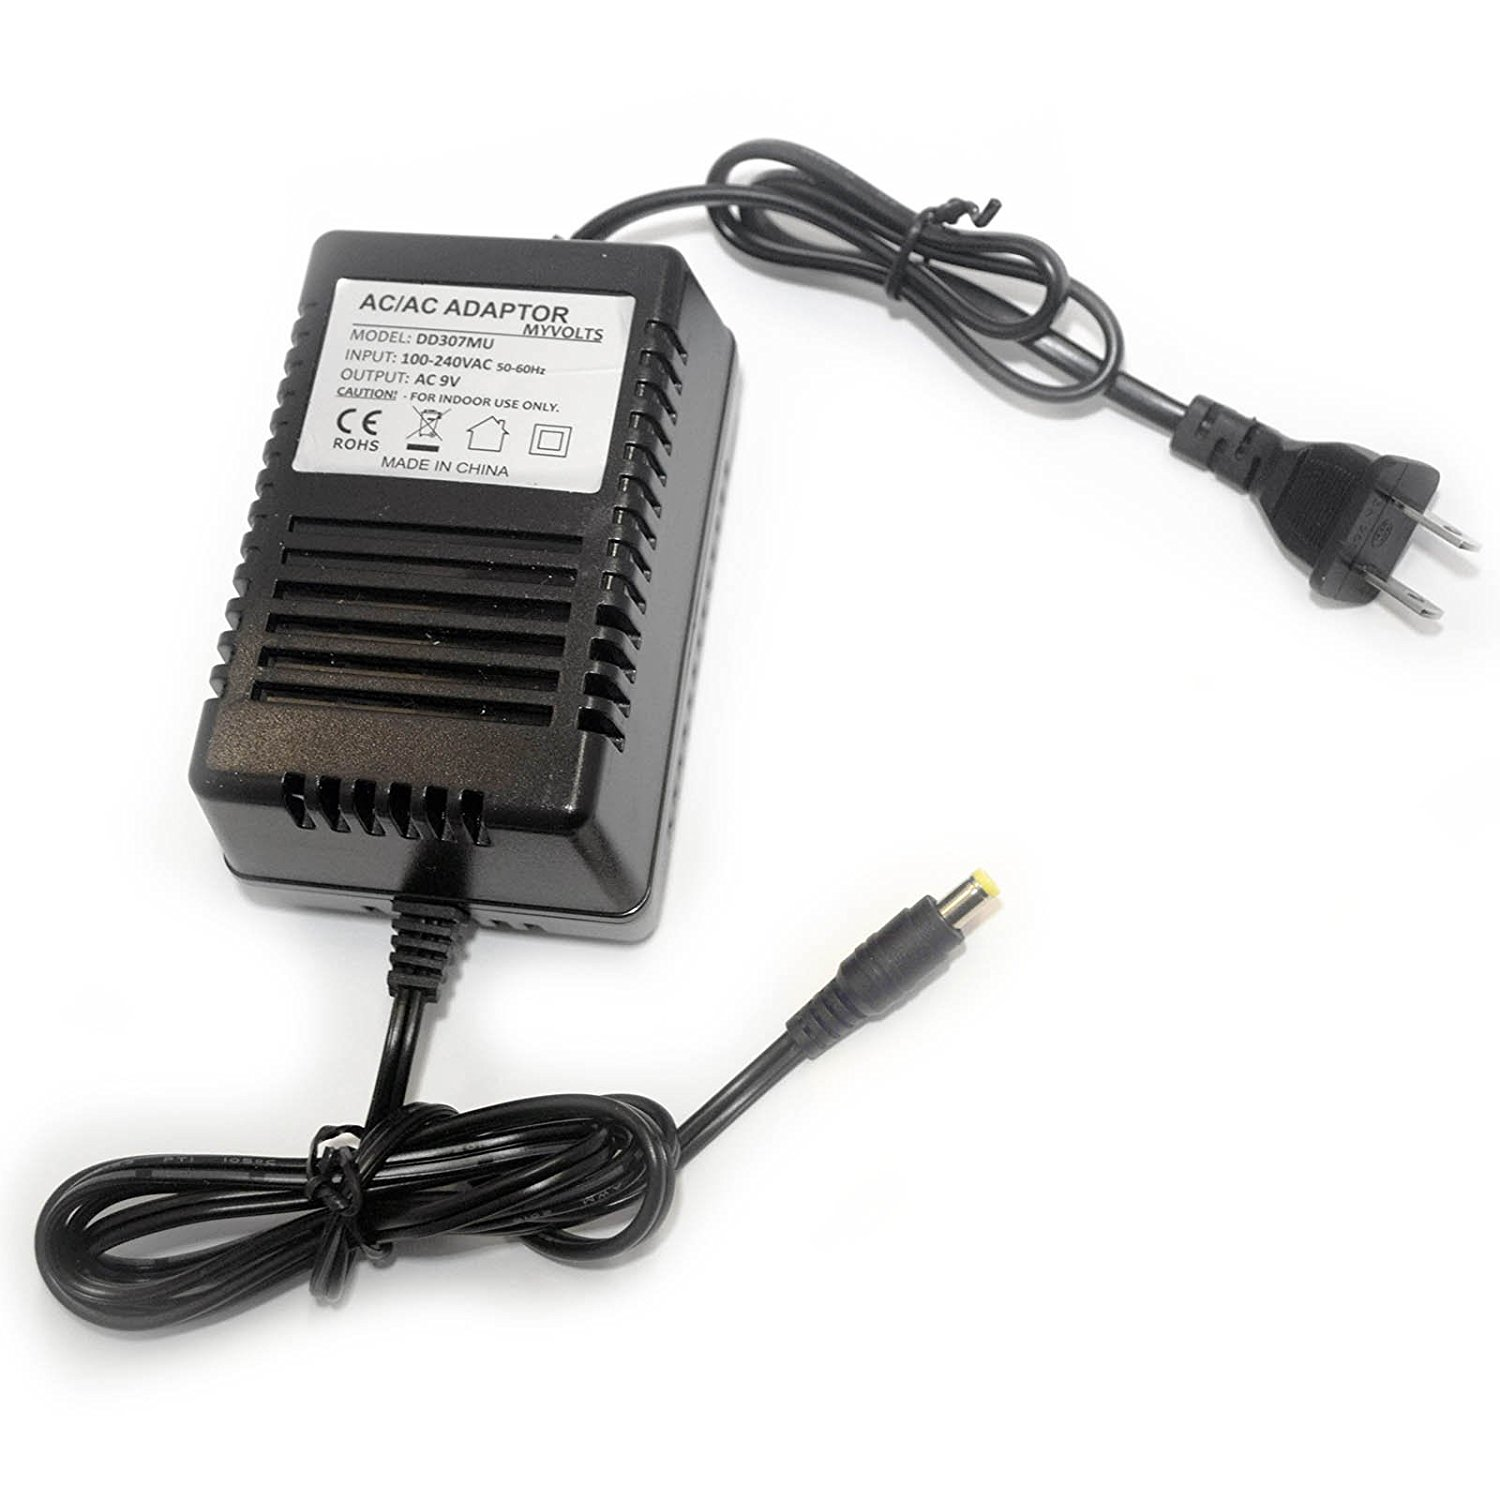 Cheap Psu Power Supplies Find Deals On Line At Antec Atx12v Supply Tester Get Quotations 9v Motorola Dvr 0920ac 3508 Part Replacement Adaptor